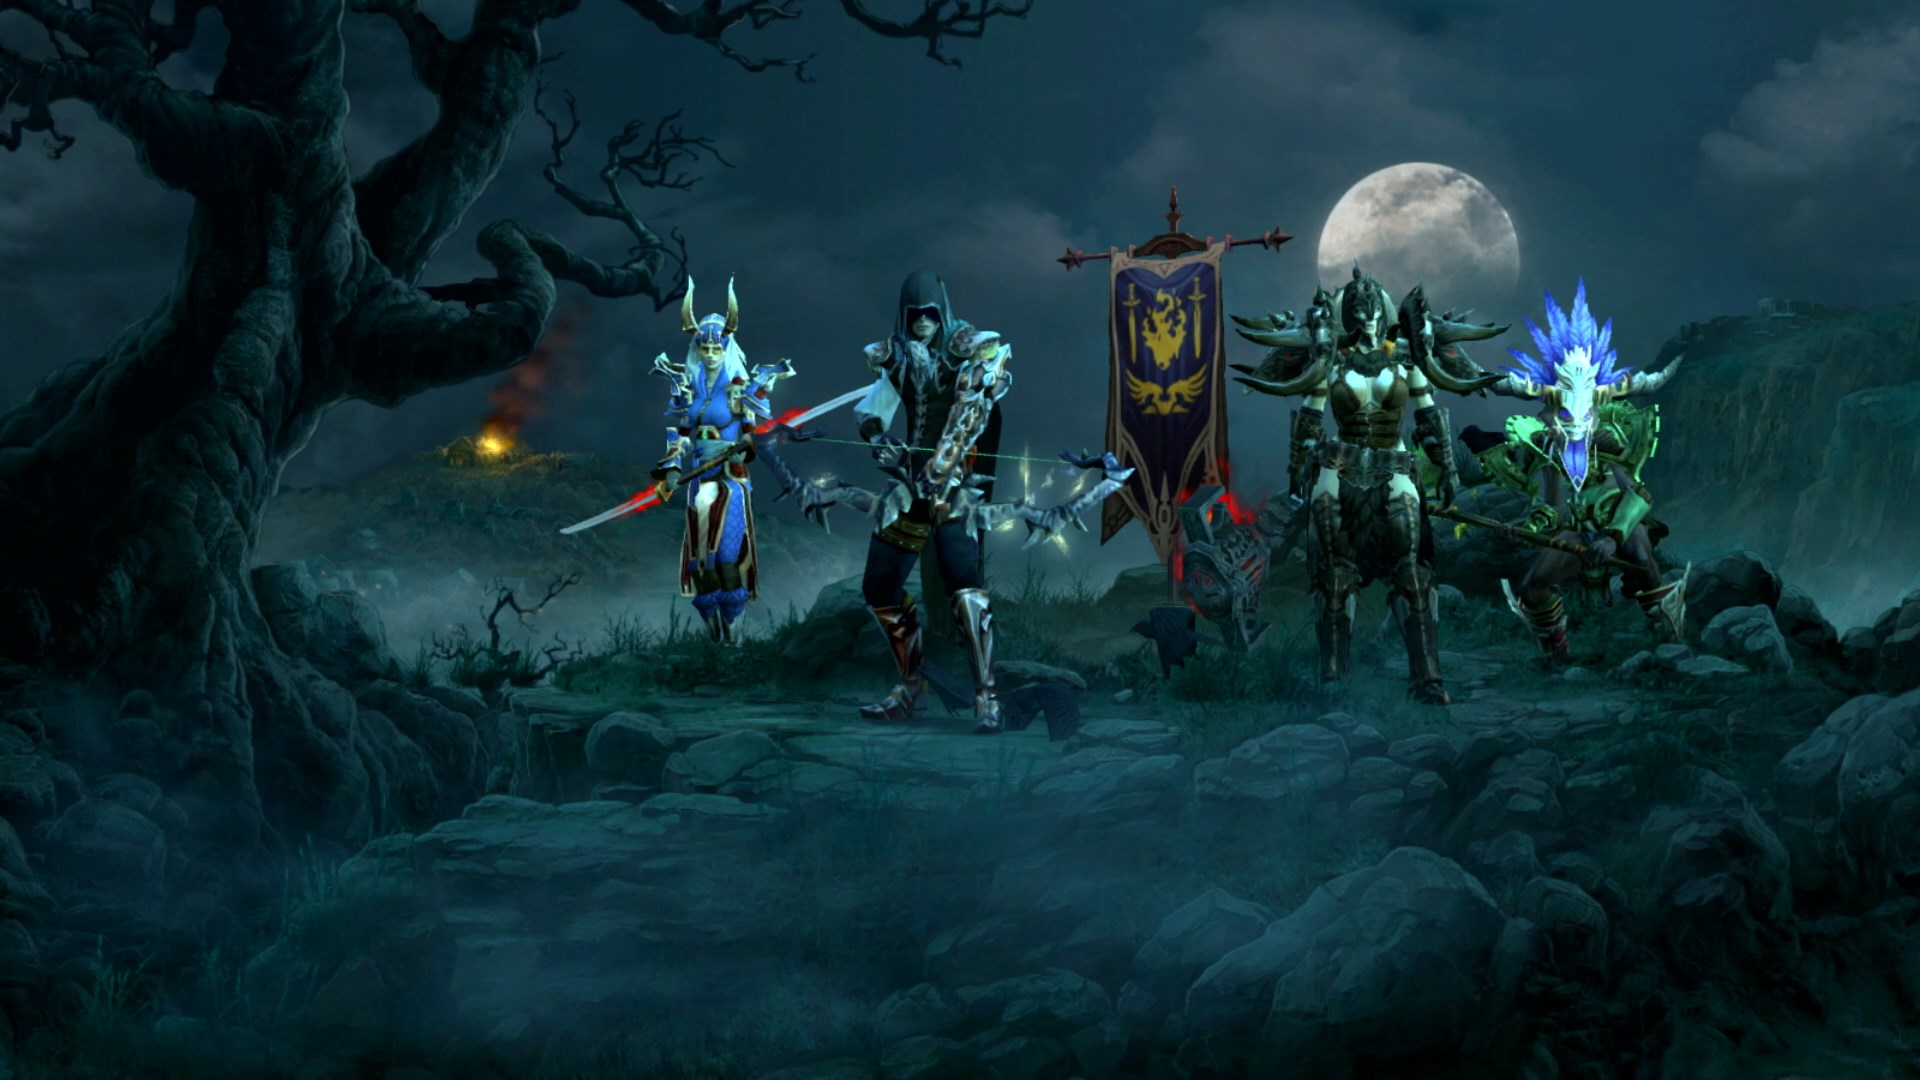 Blizzard clarifies that you will not need Switch Online to play Diablo III seasons screenshot